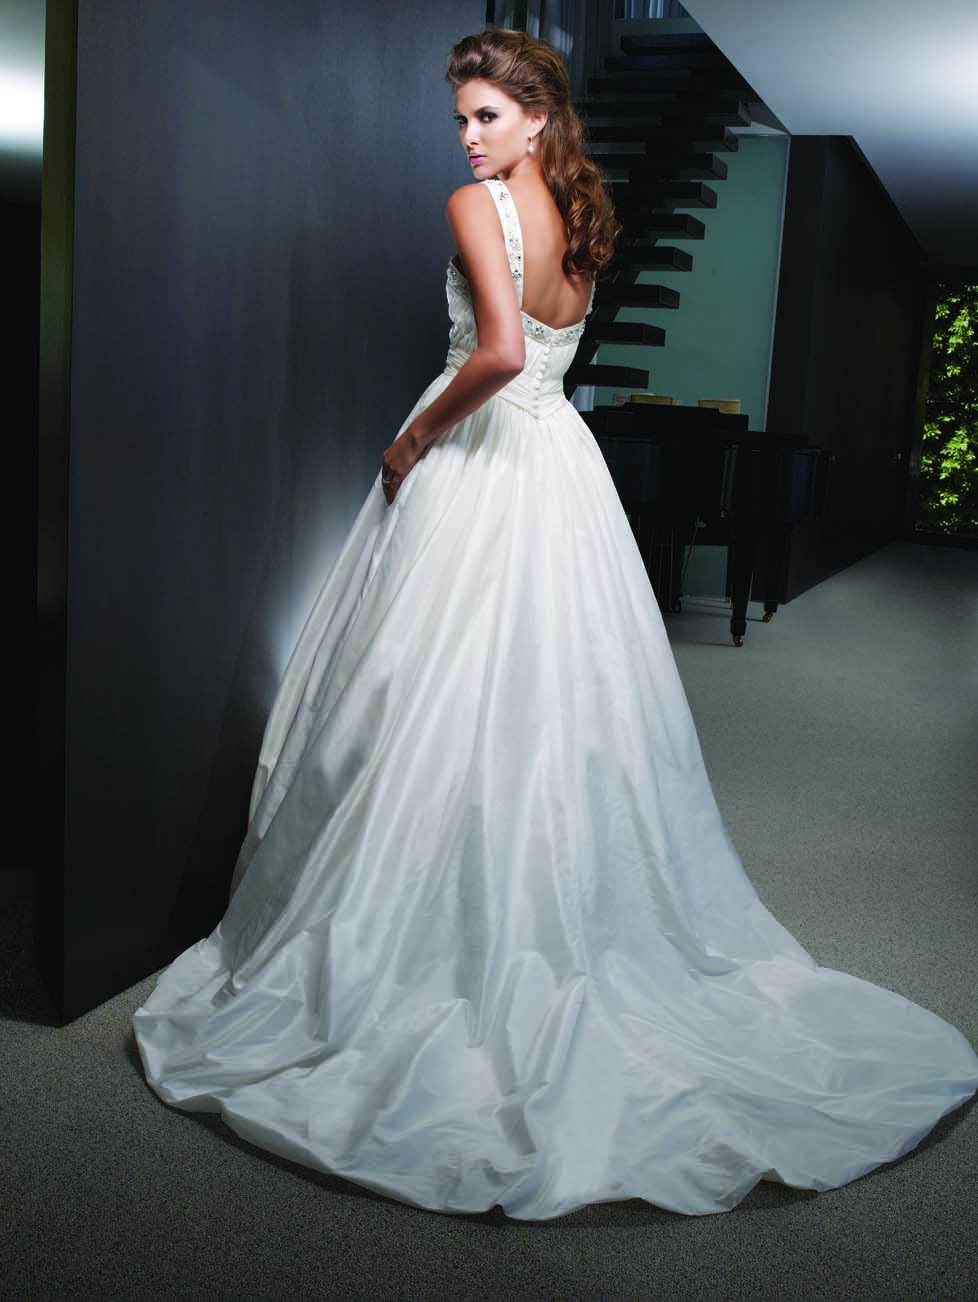 Removable lace overlay wedding dress